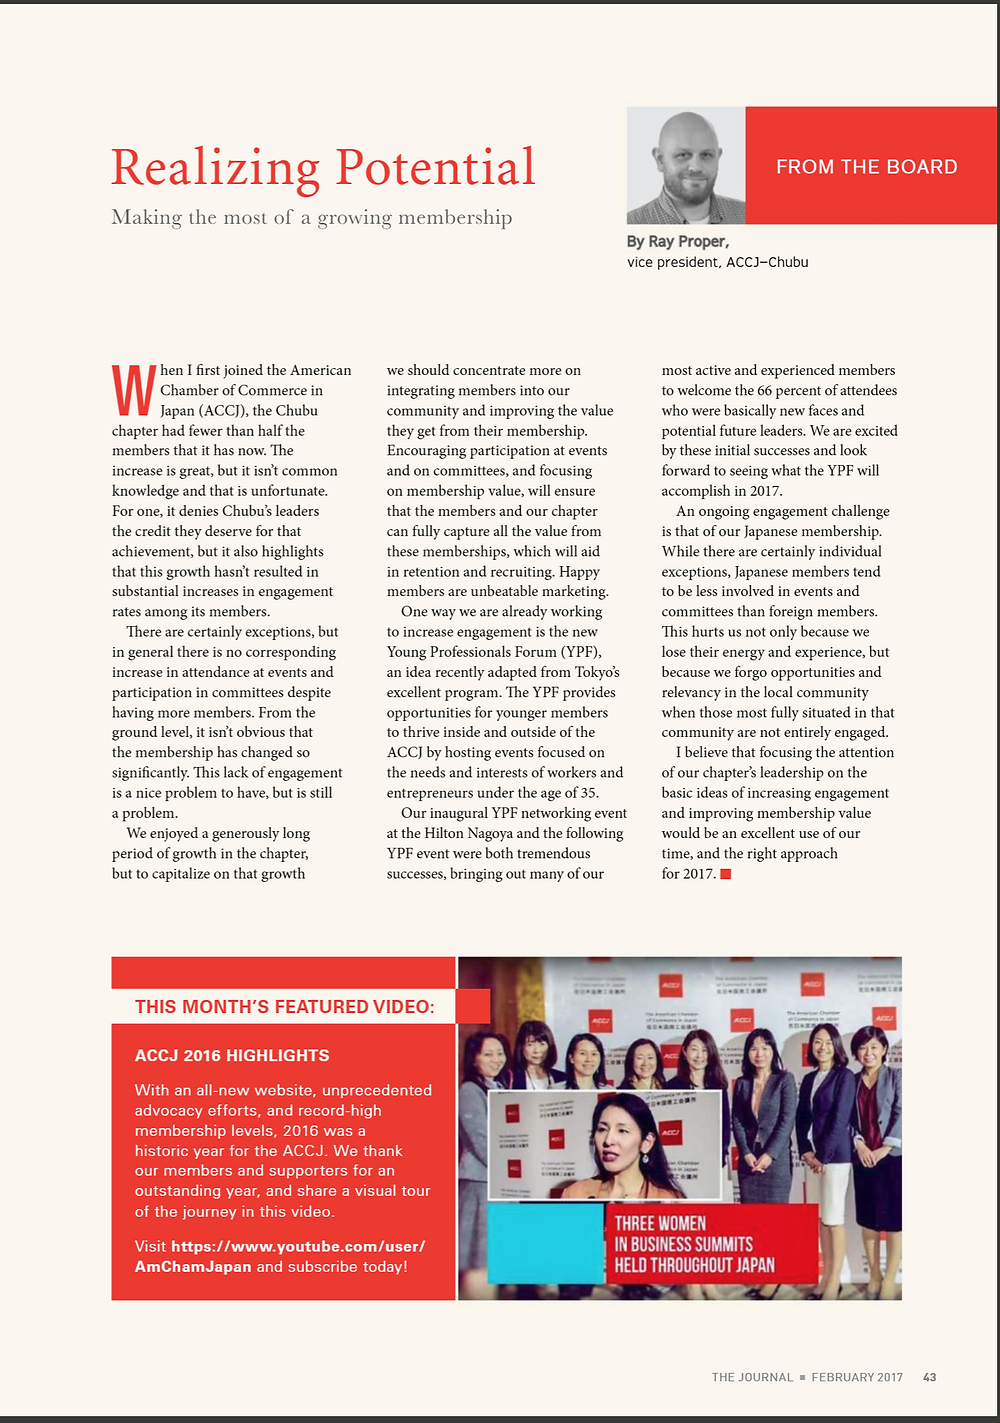 ACCJ the Journal February 2017 - Page 43  This month's featured video:    With an all-new website, unprecedented advocacy efforts, and record-high membership levels, 2016 was a historic year for the ACCJ. We thank our members and supporters for an outstanding year.   https://www.youtube.com/watch?v=DrE-y-hK5mE    The ACCJ - 在日米国商工会議所  http://www.accj.or.jp